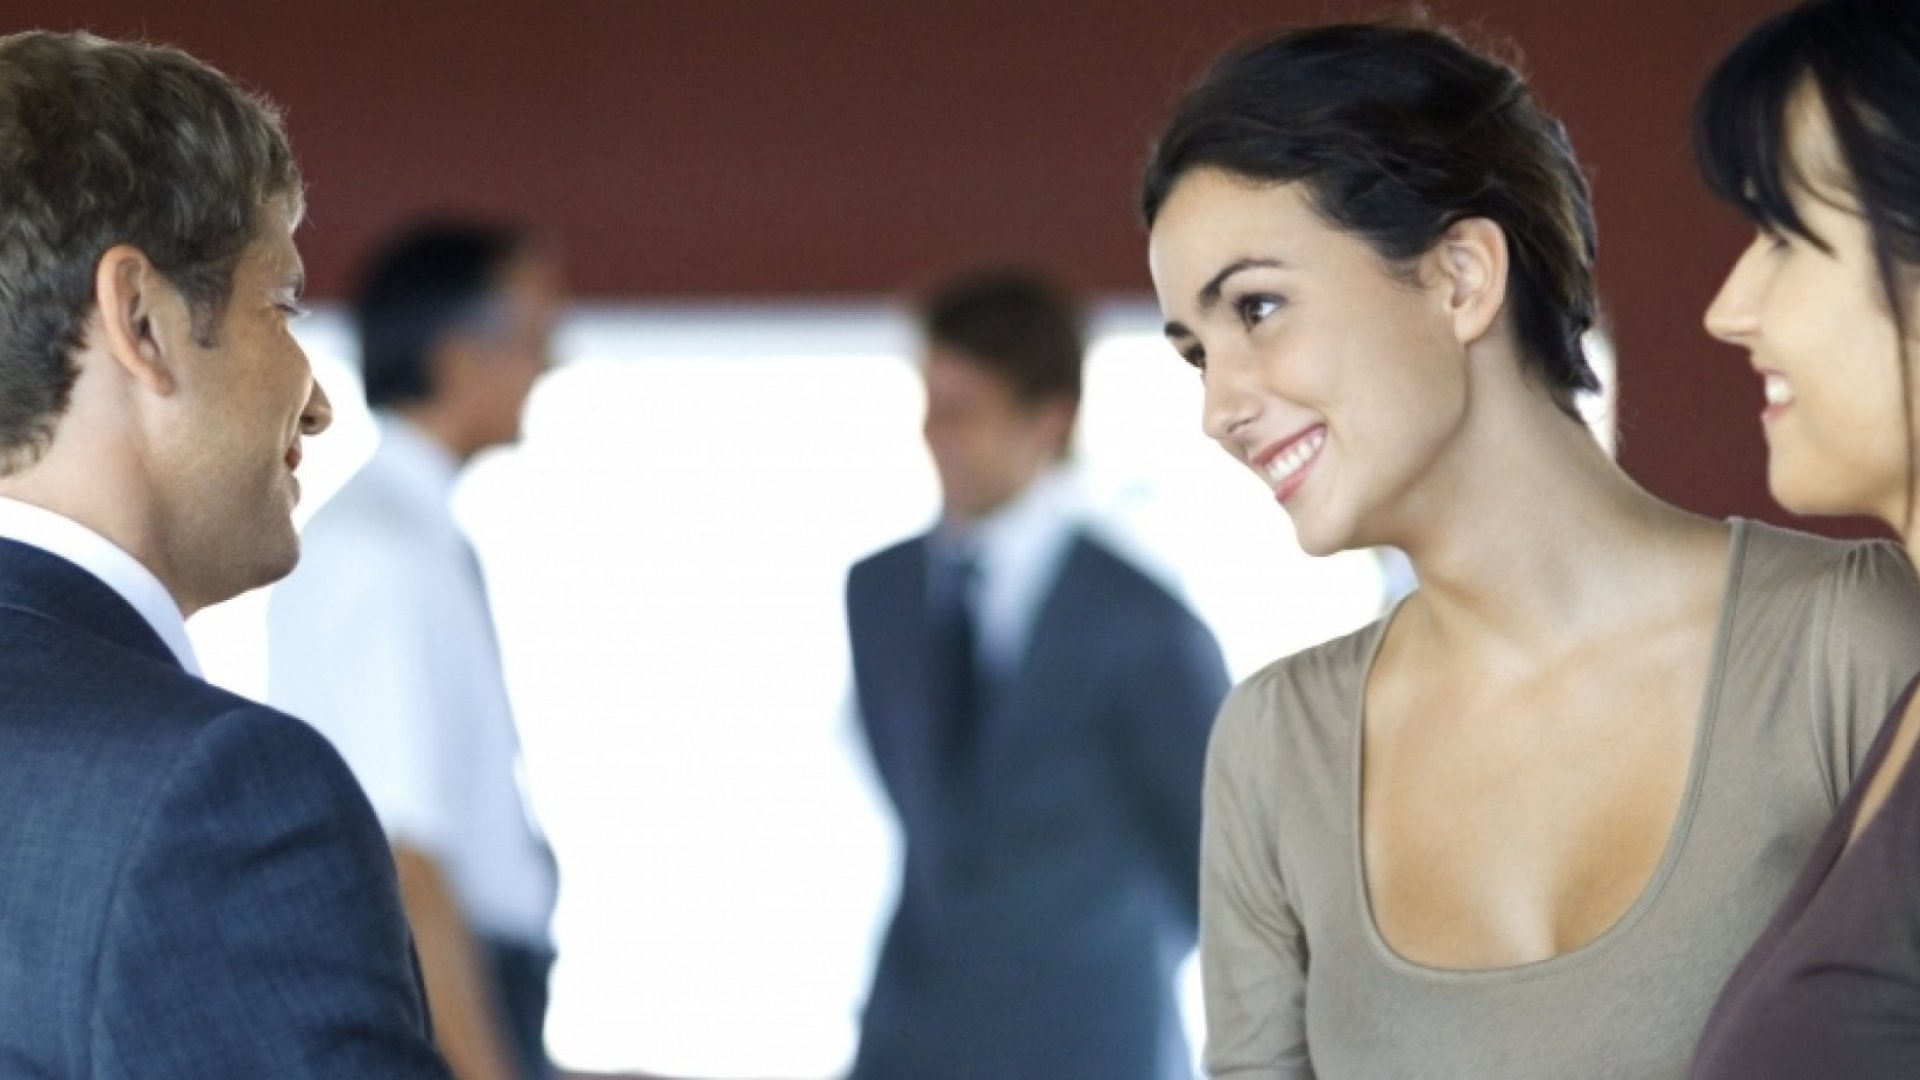 7 Things Remarkably Likable People Do